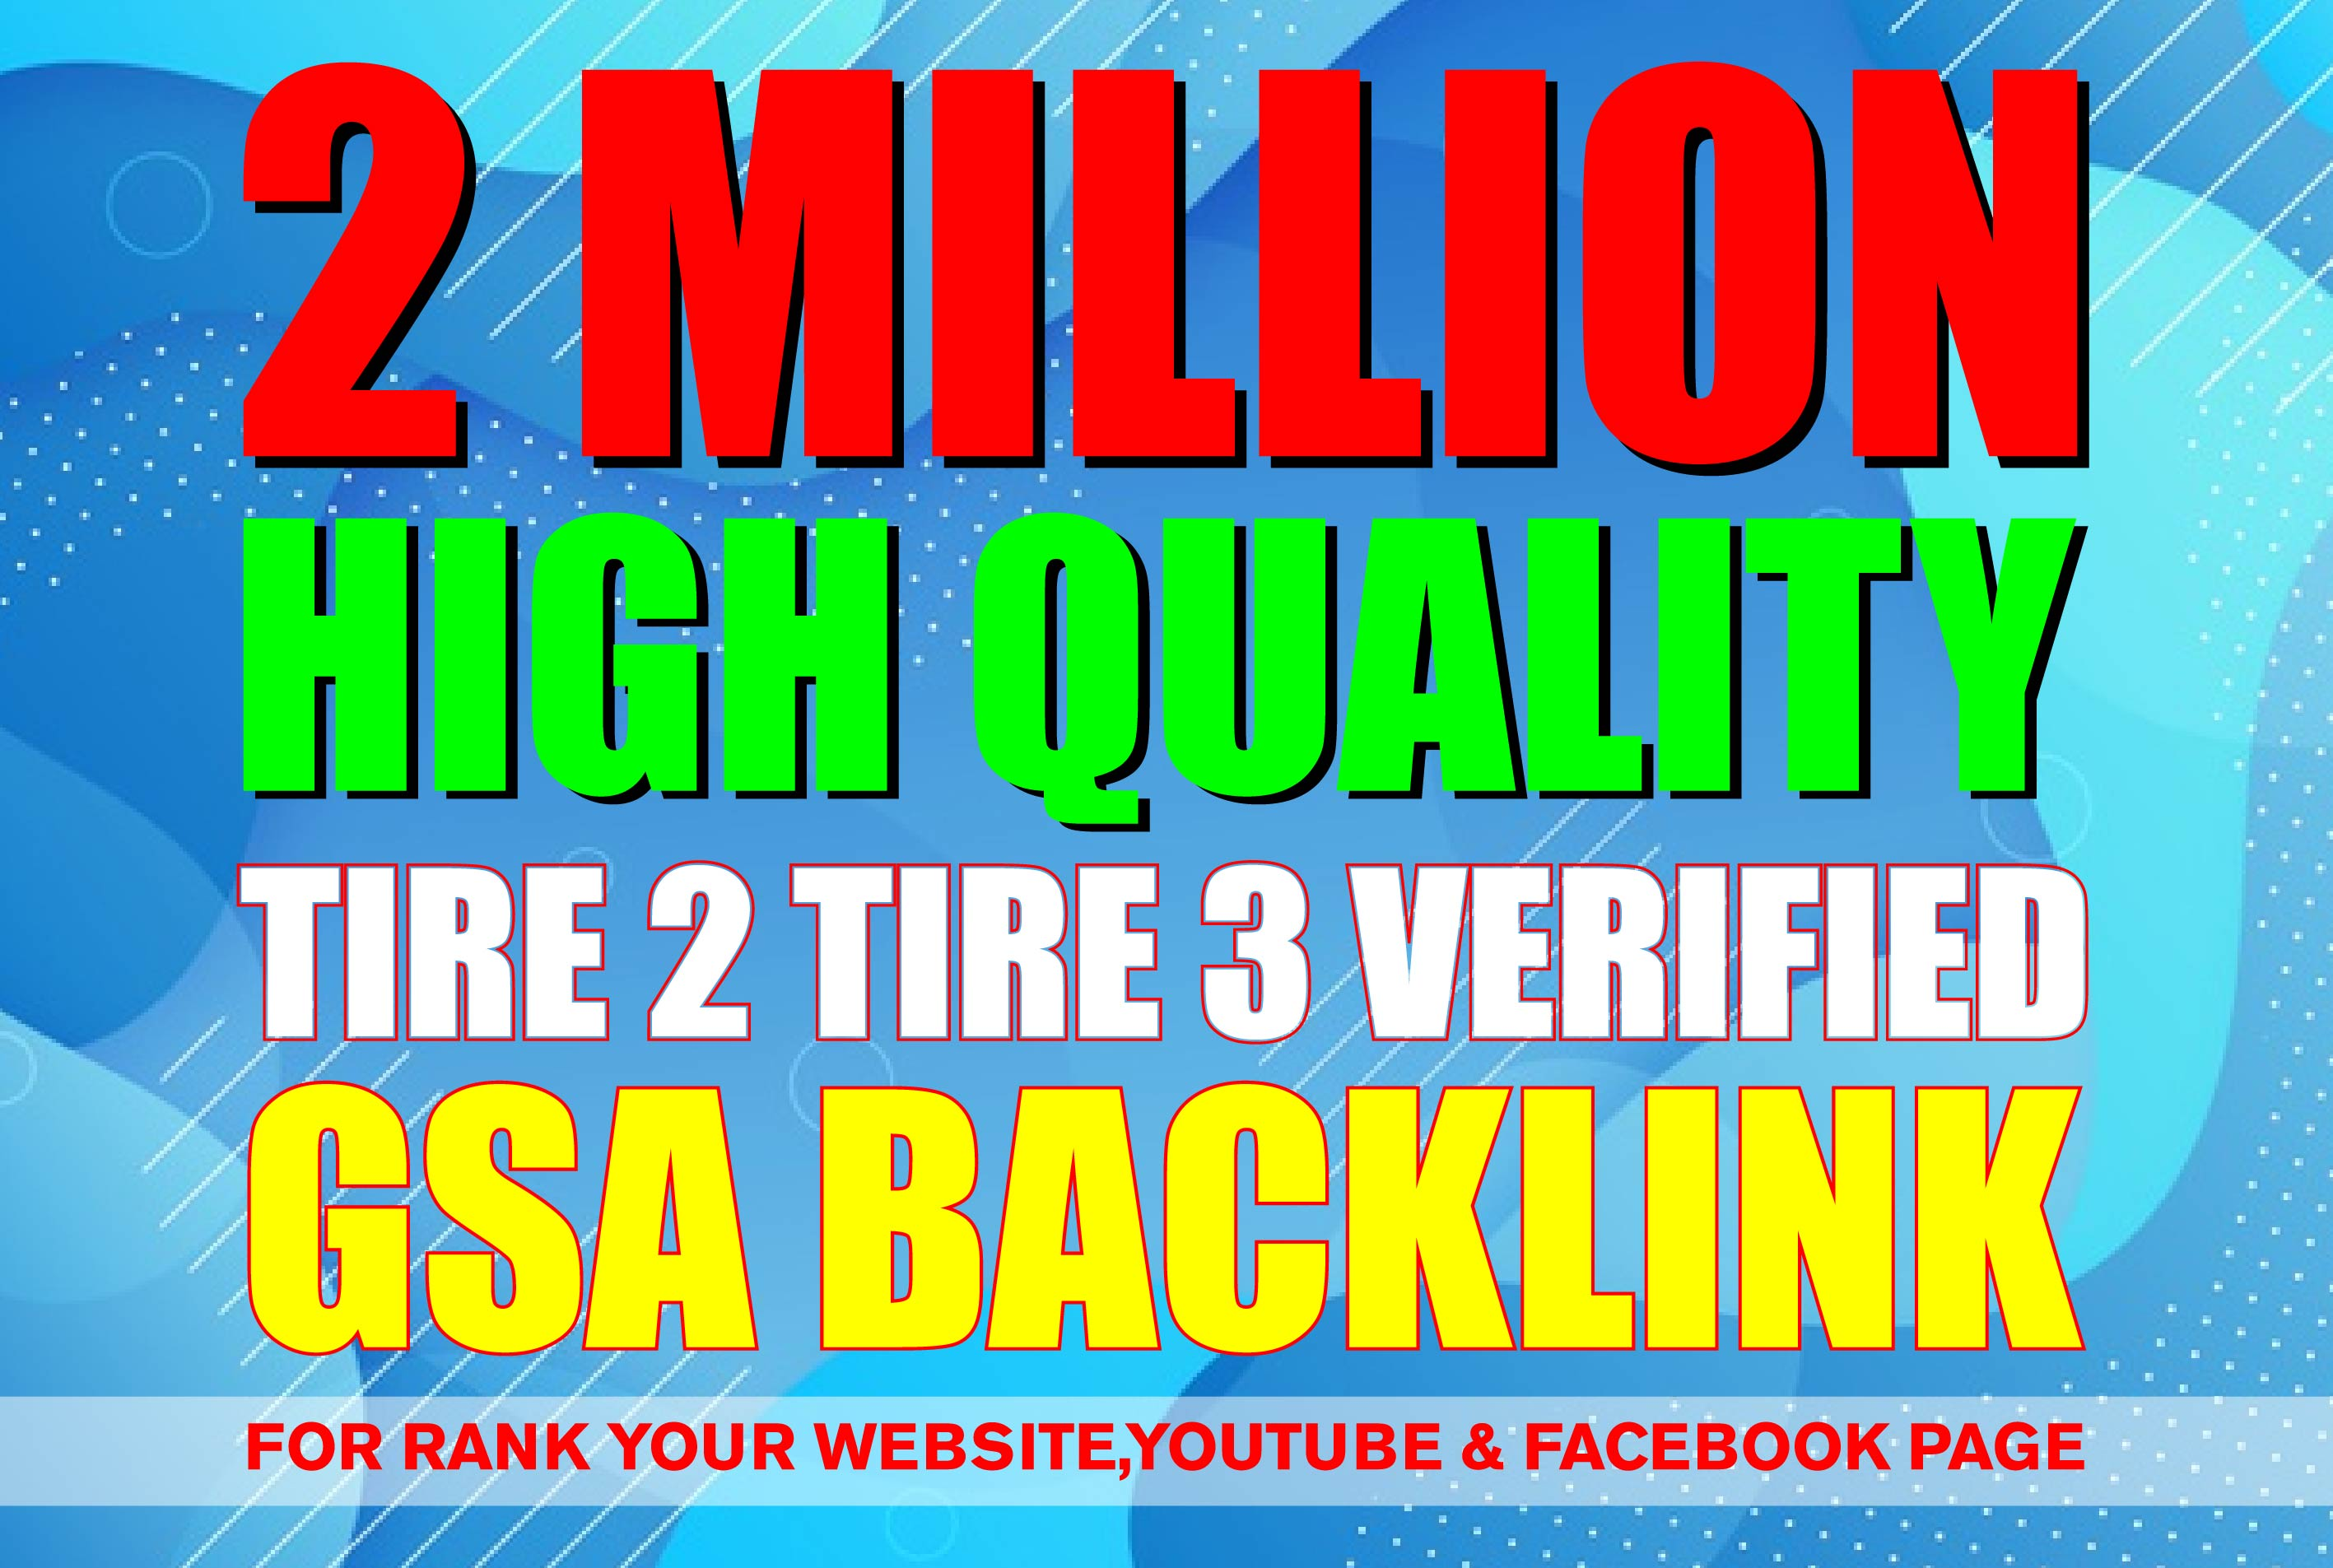 I will Create 2 Million High Quality GSA SER Verified Backlinks